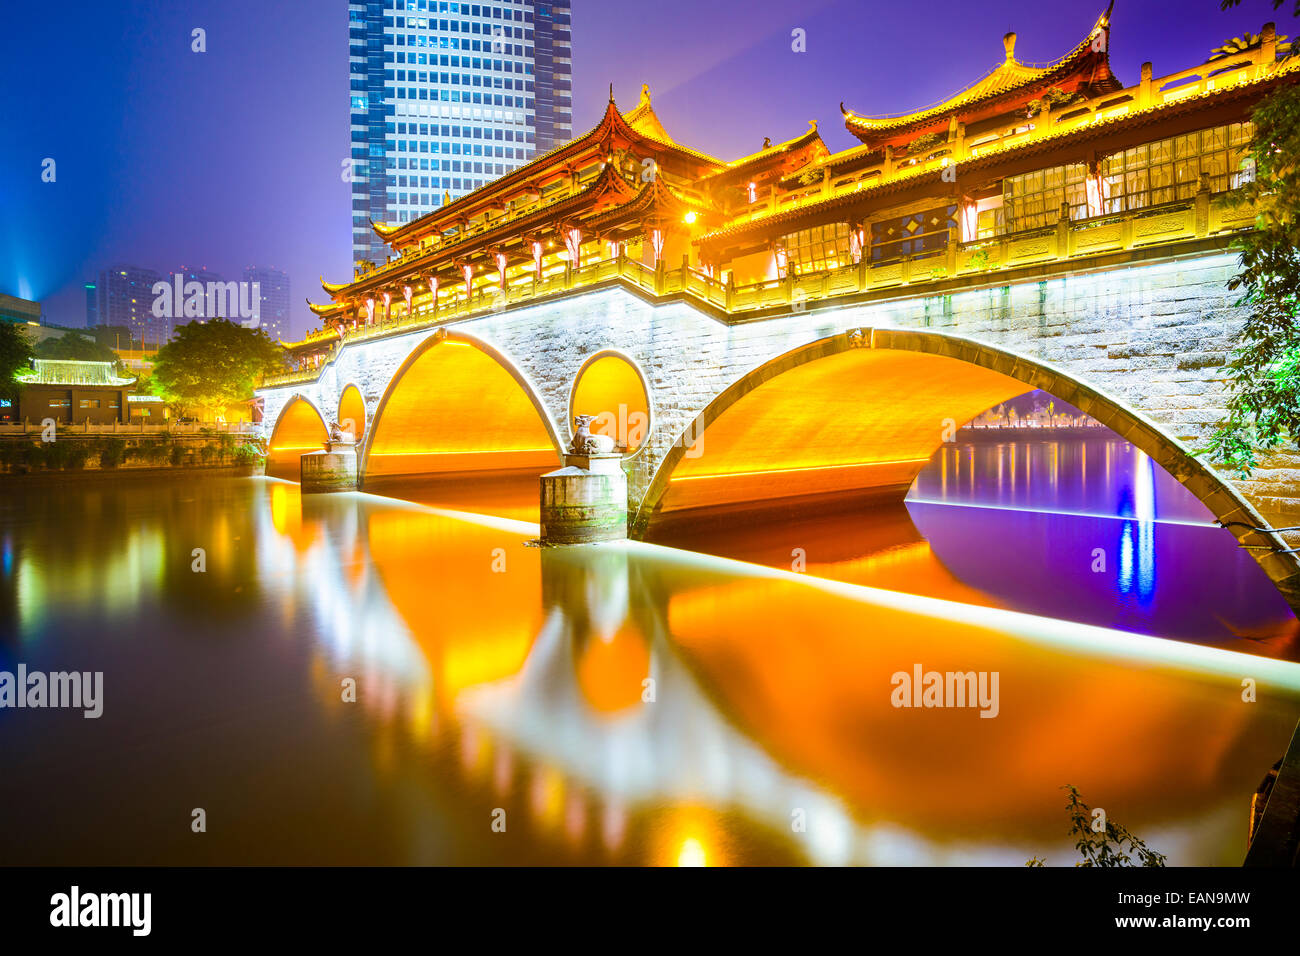 Chengdu, Sichuan, China at Anshun Bridge over the Jin River. - Stock Image